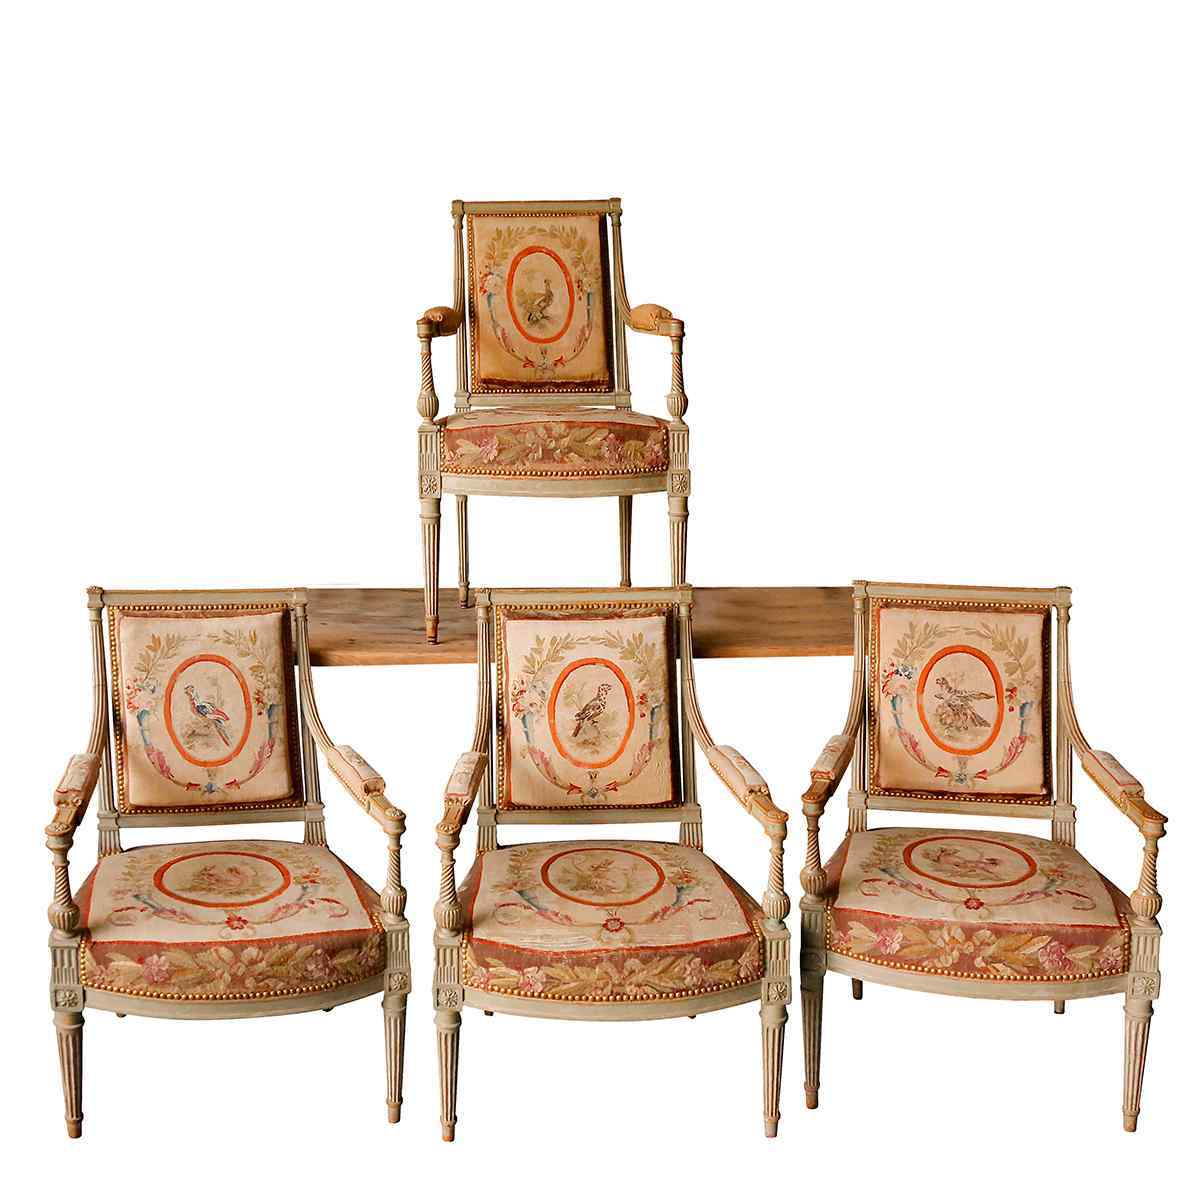 A Set of Four Armchairs Directory style